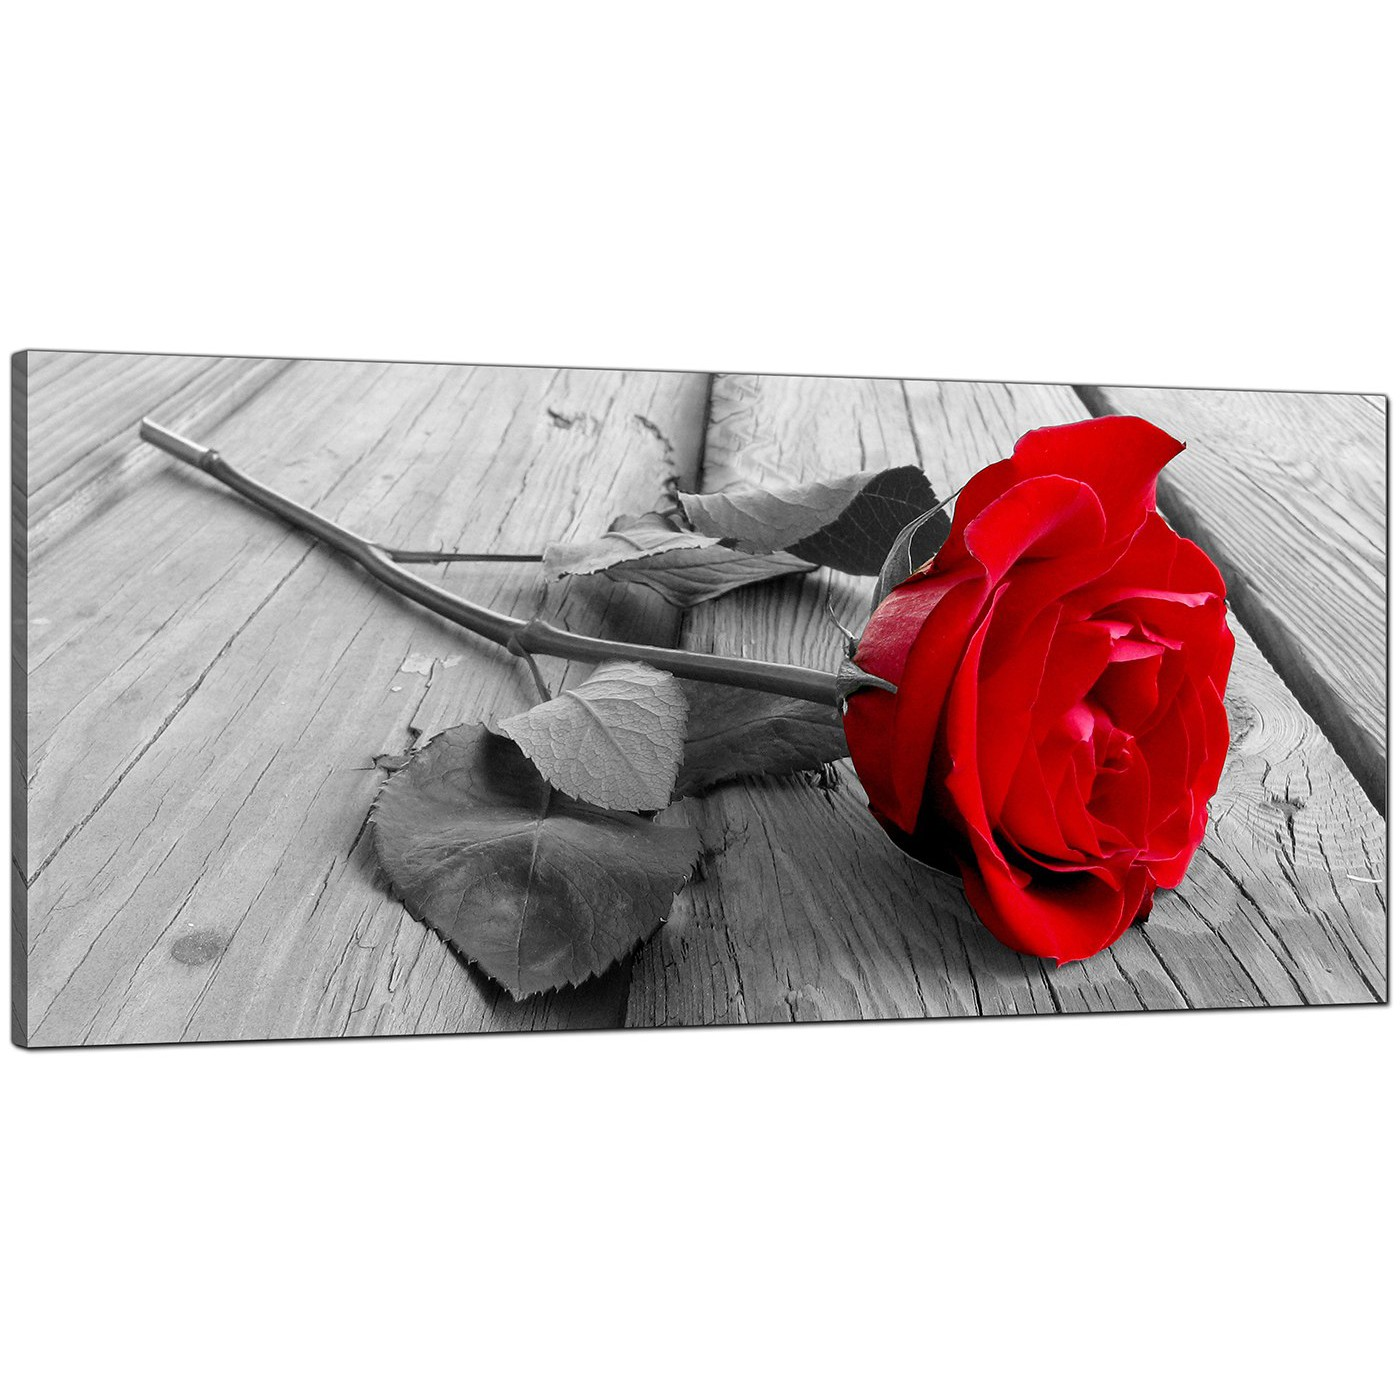 Canvas Picture Print Red Rose Flower Floral Art Large Poster Black And White